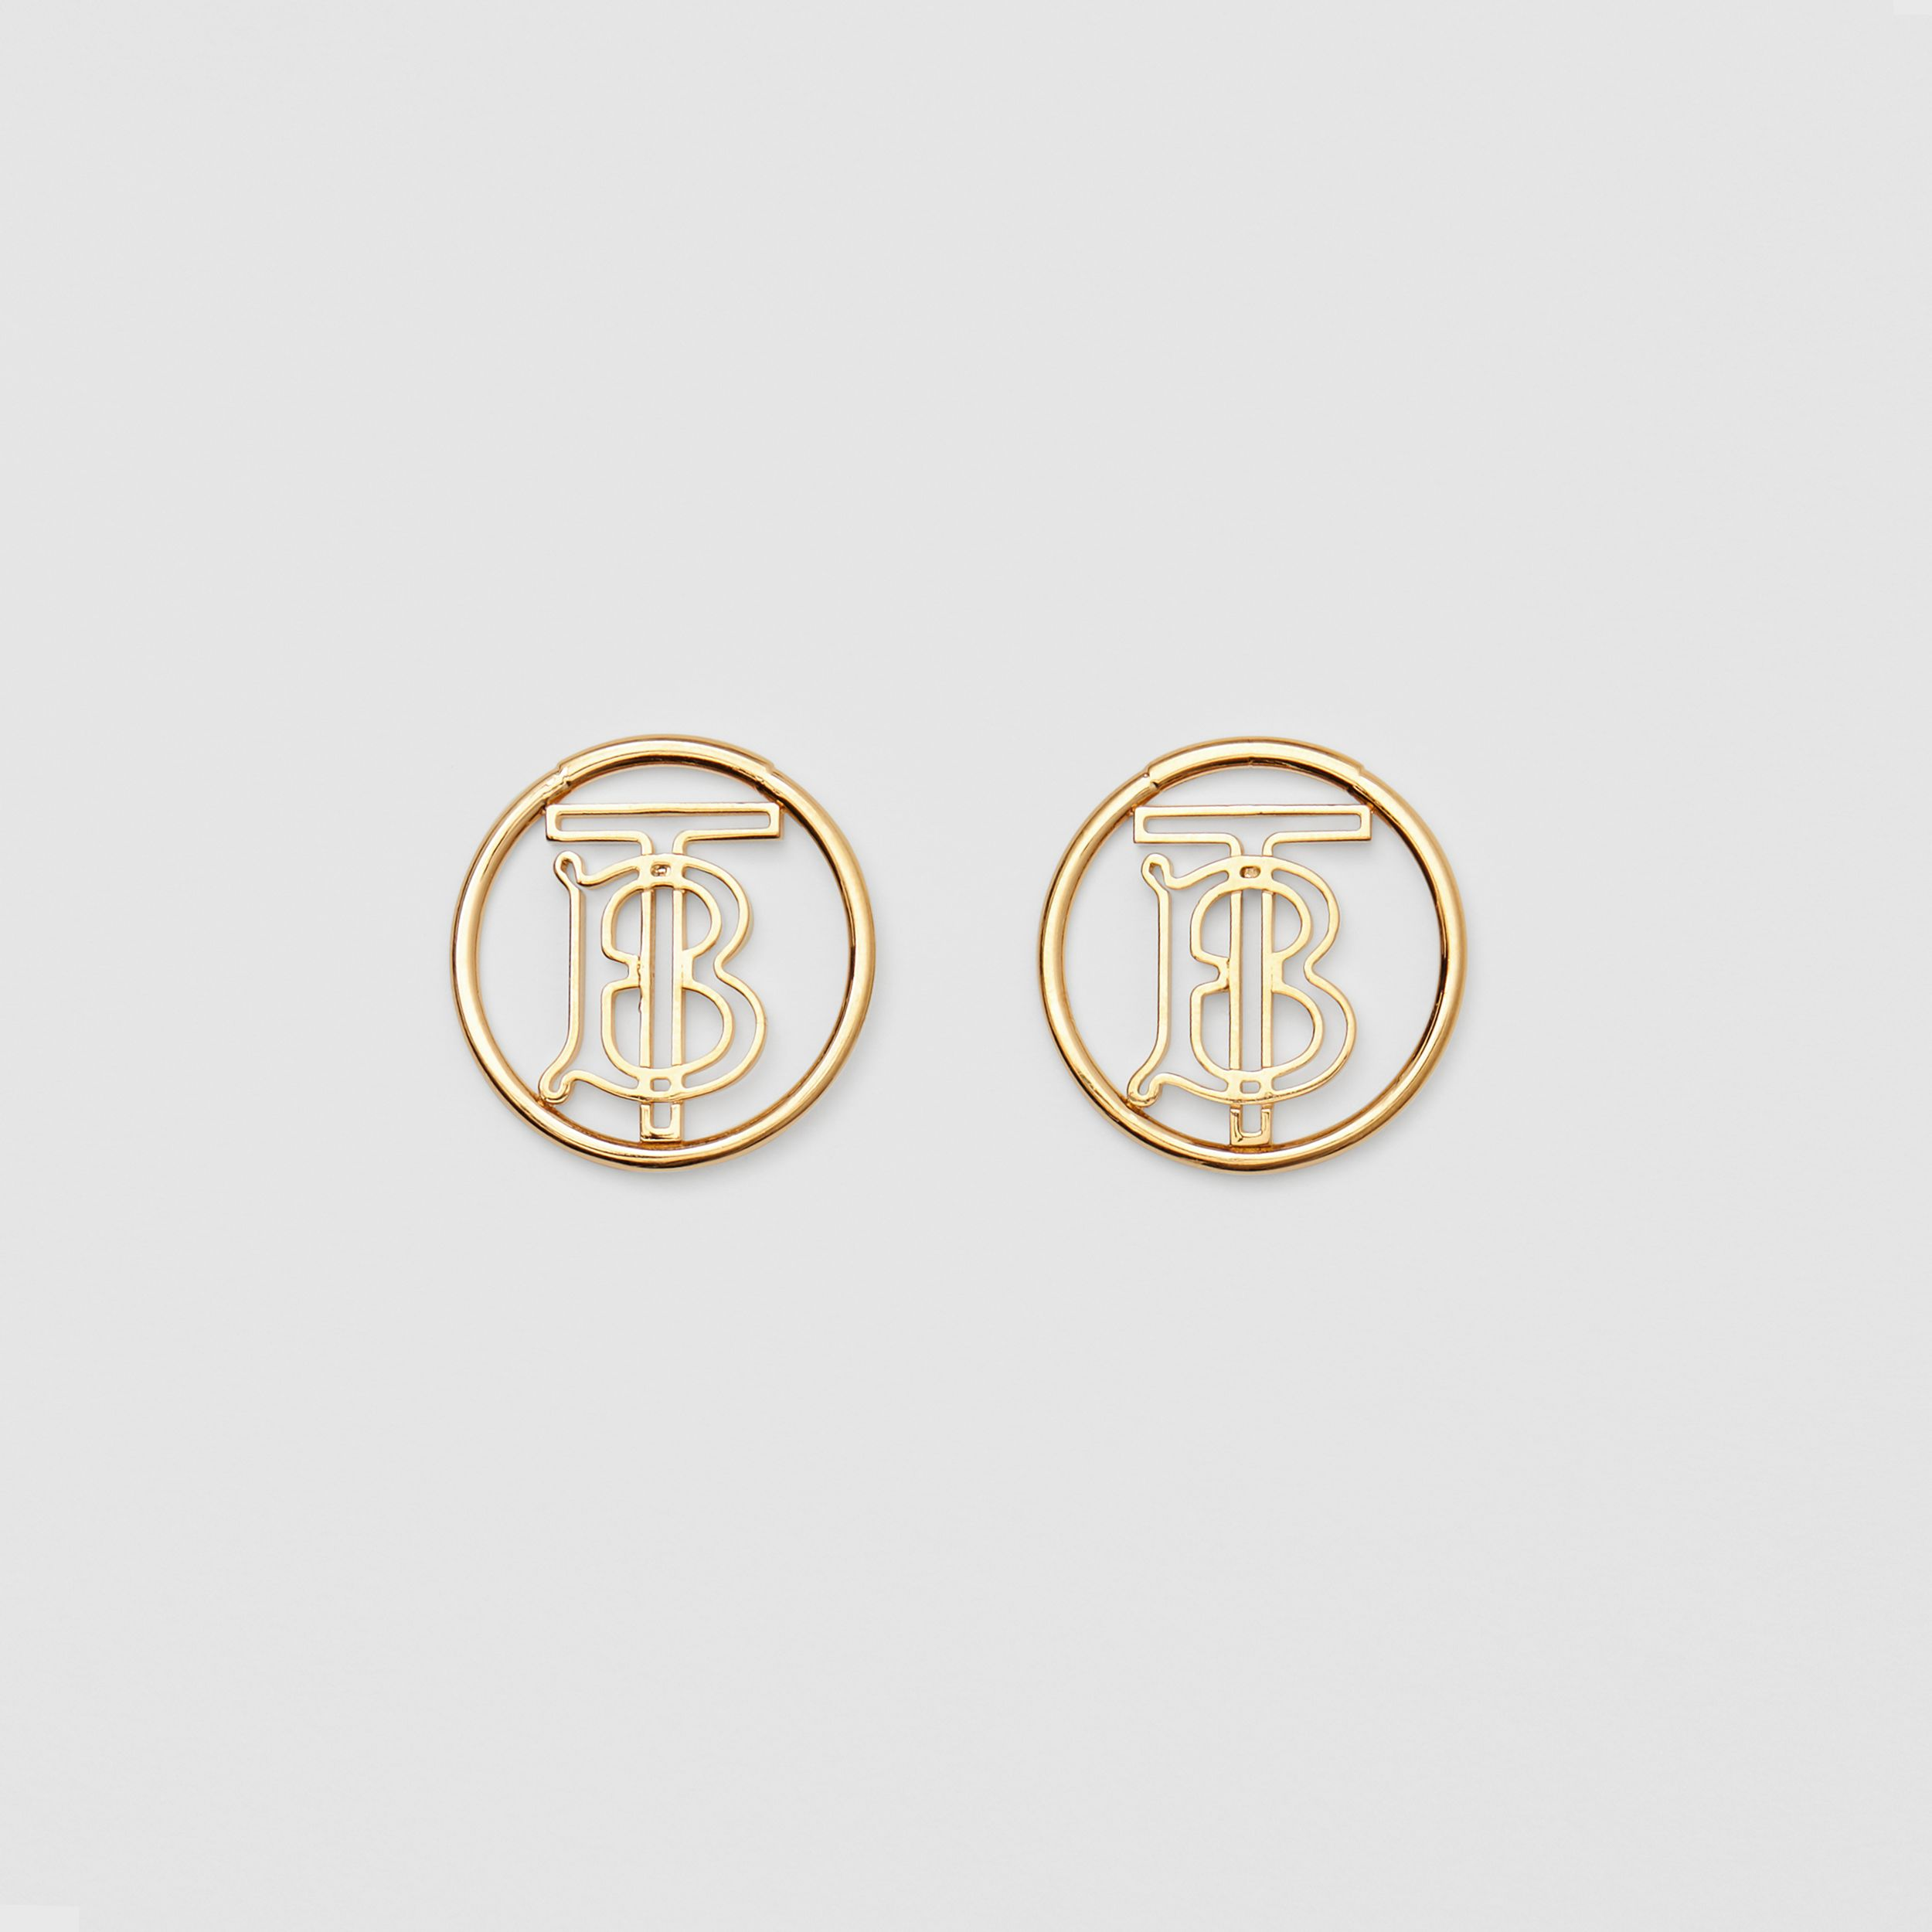 Gold-plated Monogram Motif Earrings in Light - Women | Burberry Australia - 1